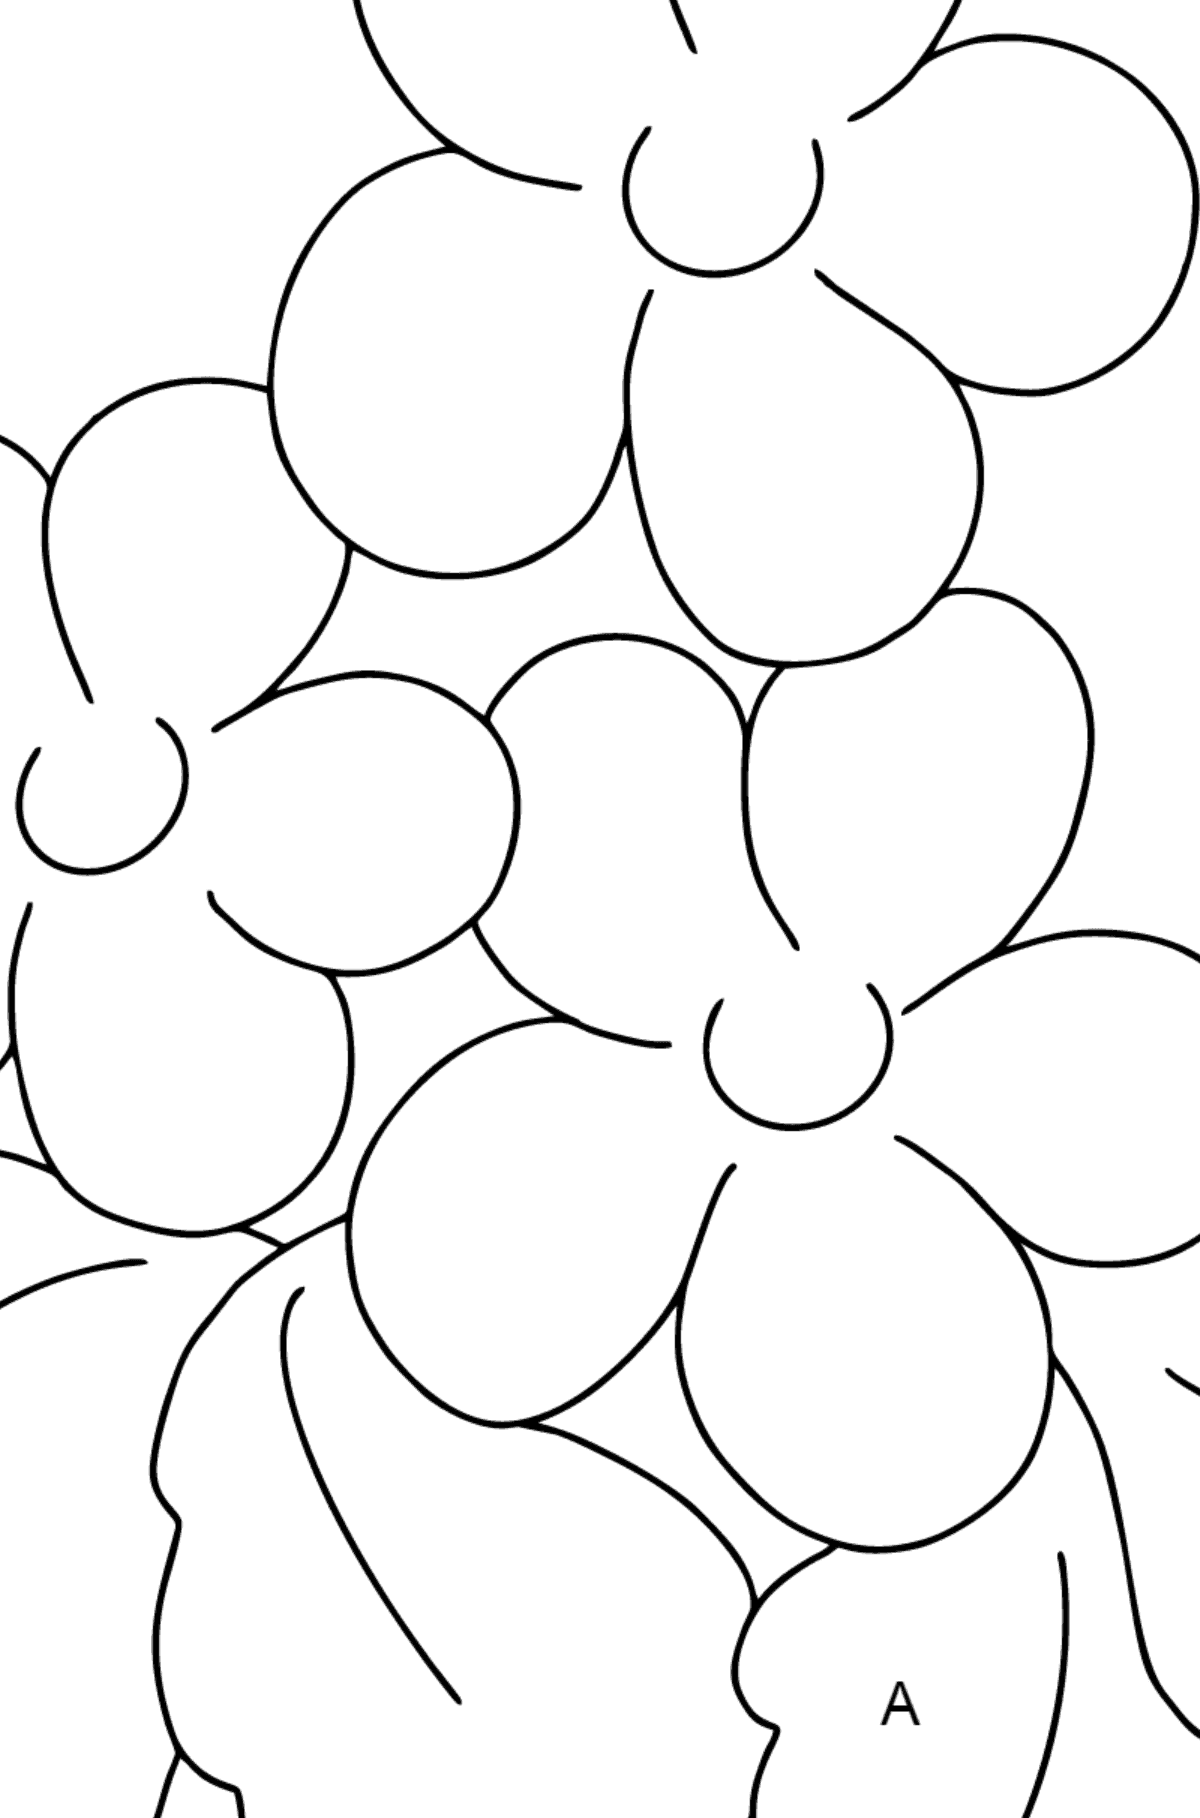 Coloring Page - Spring and Flowers - Math Coloring - Addition for Children